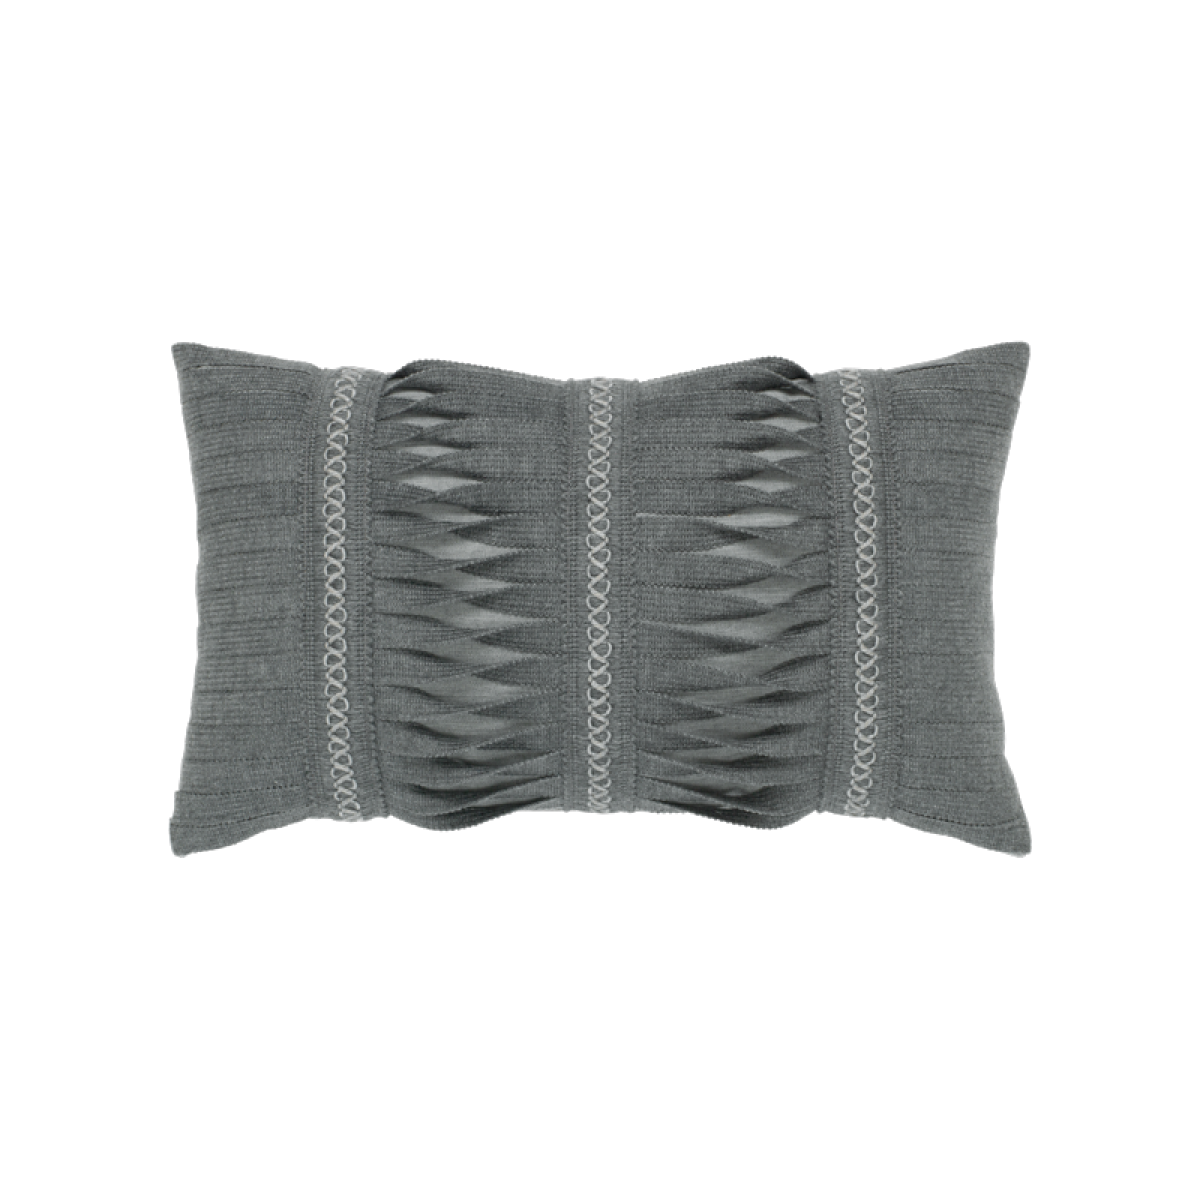 Gladiator Smoke Lumbar